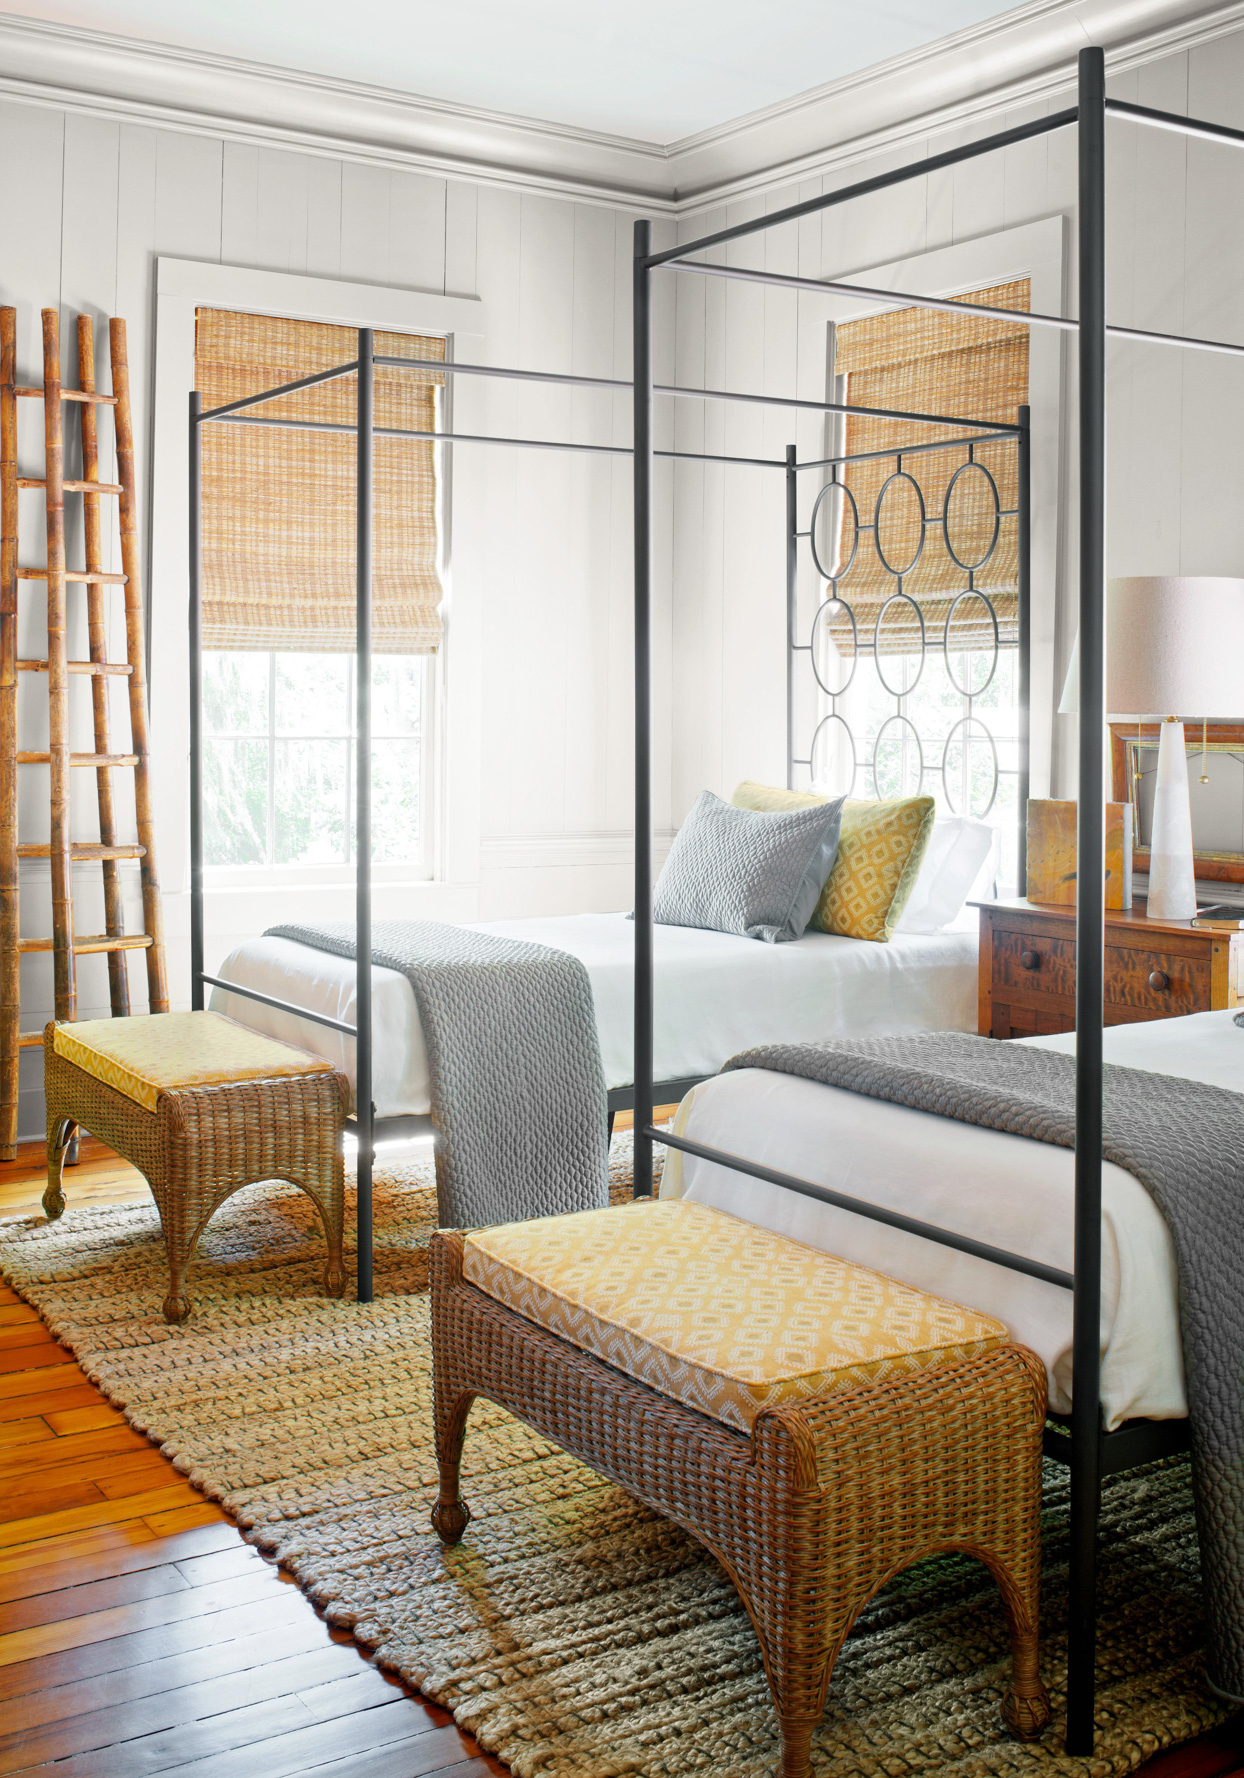 Twin canopy beds in bedroom